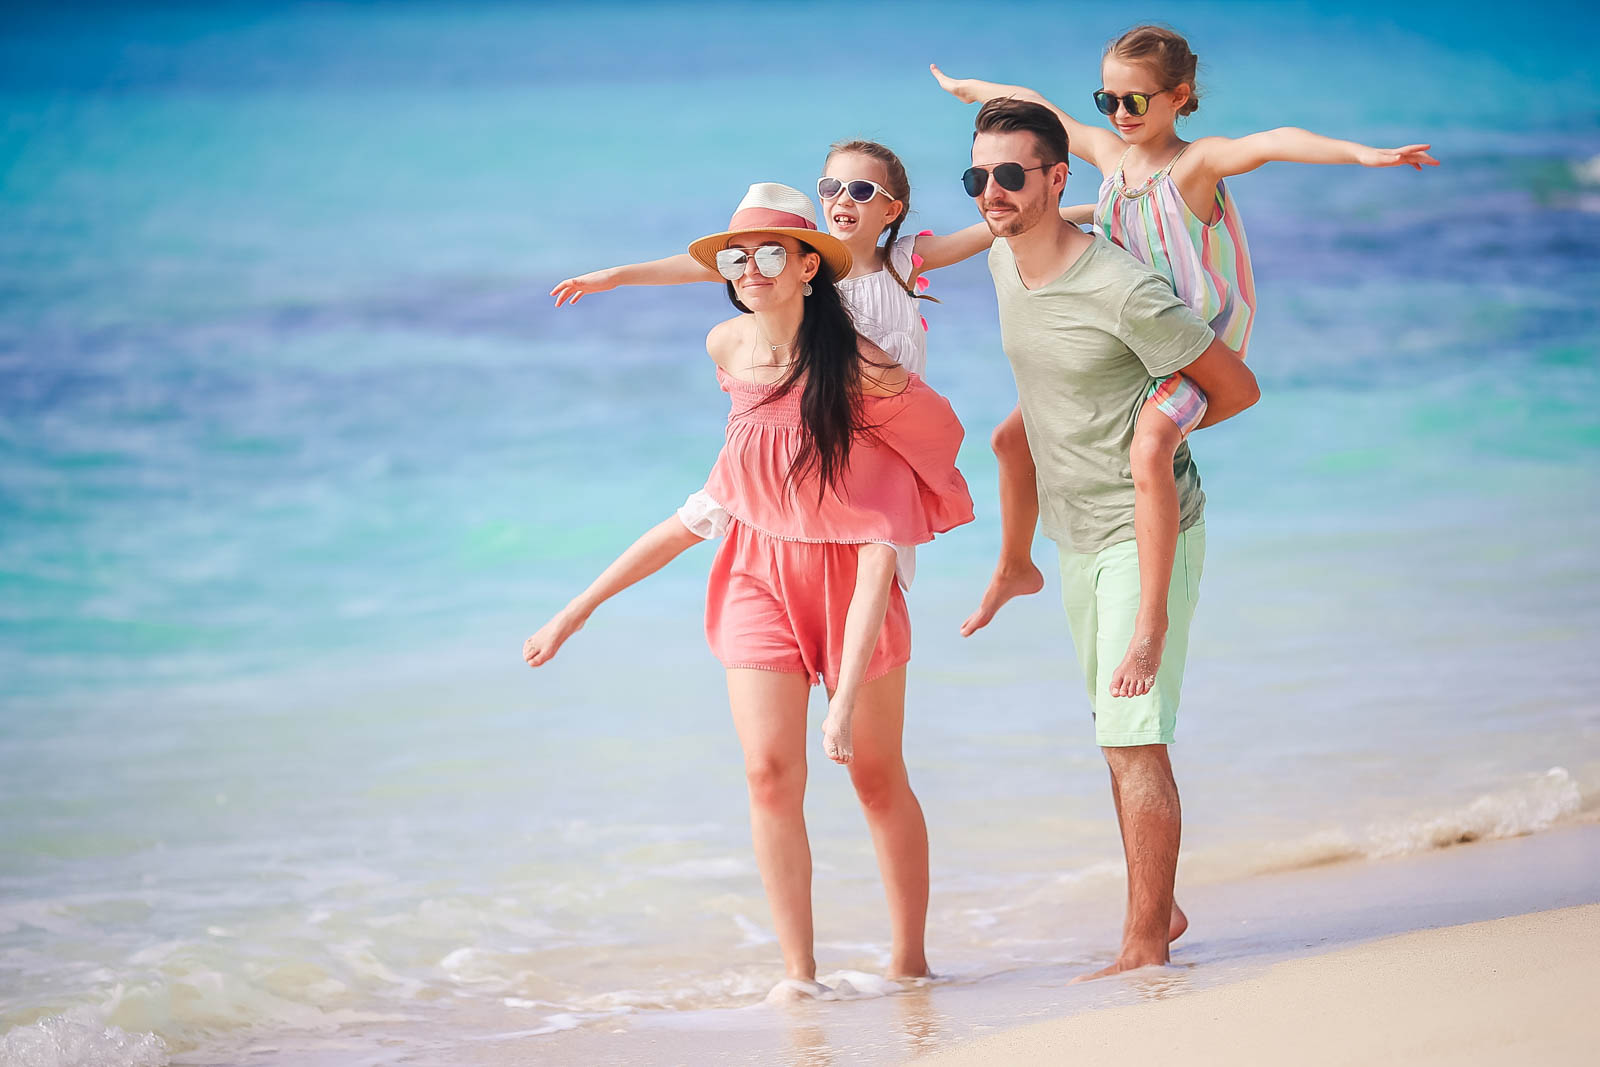 Young family on Bahamas vacation. Take a day cruise to Bahamas to experience the same fun on Bahamas day trip from Miami via Bahamas air charter.